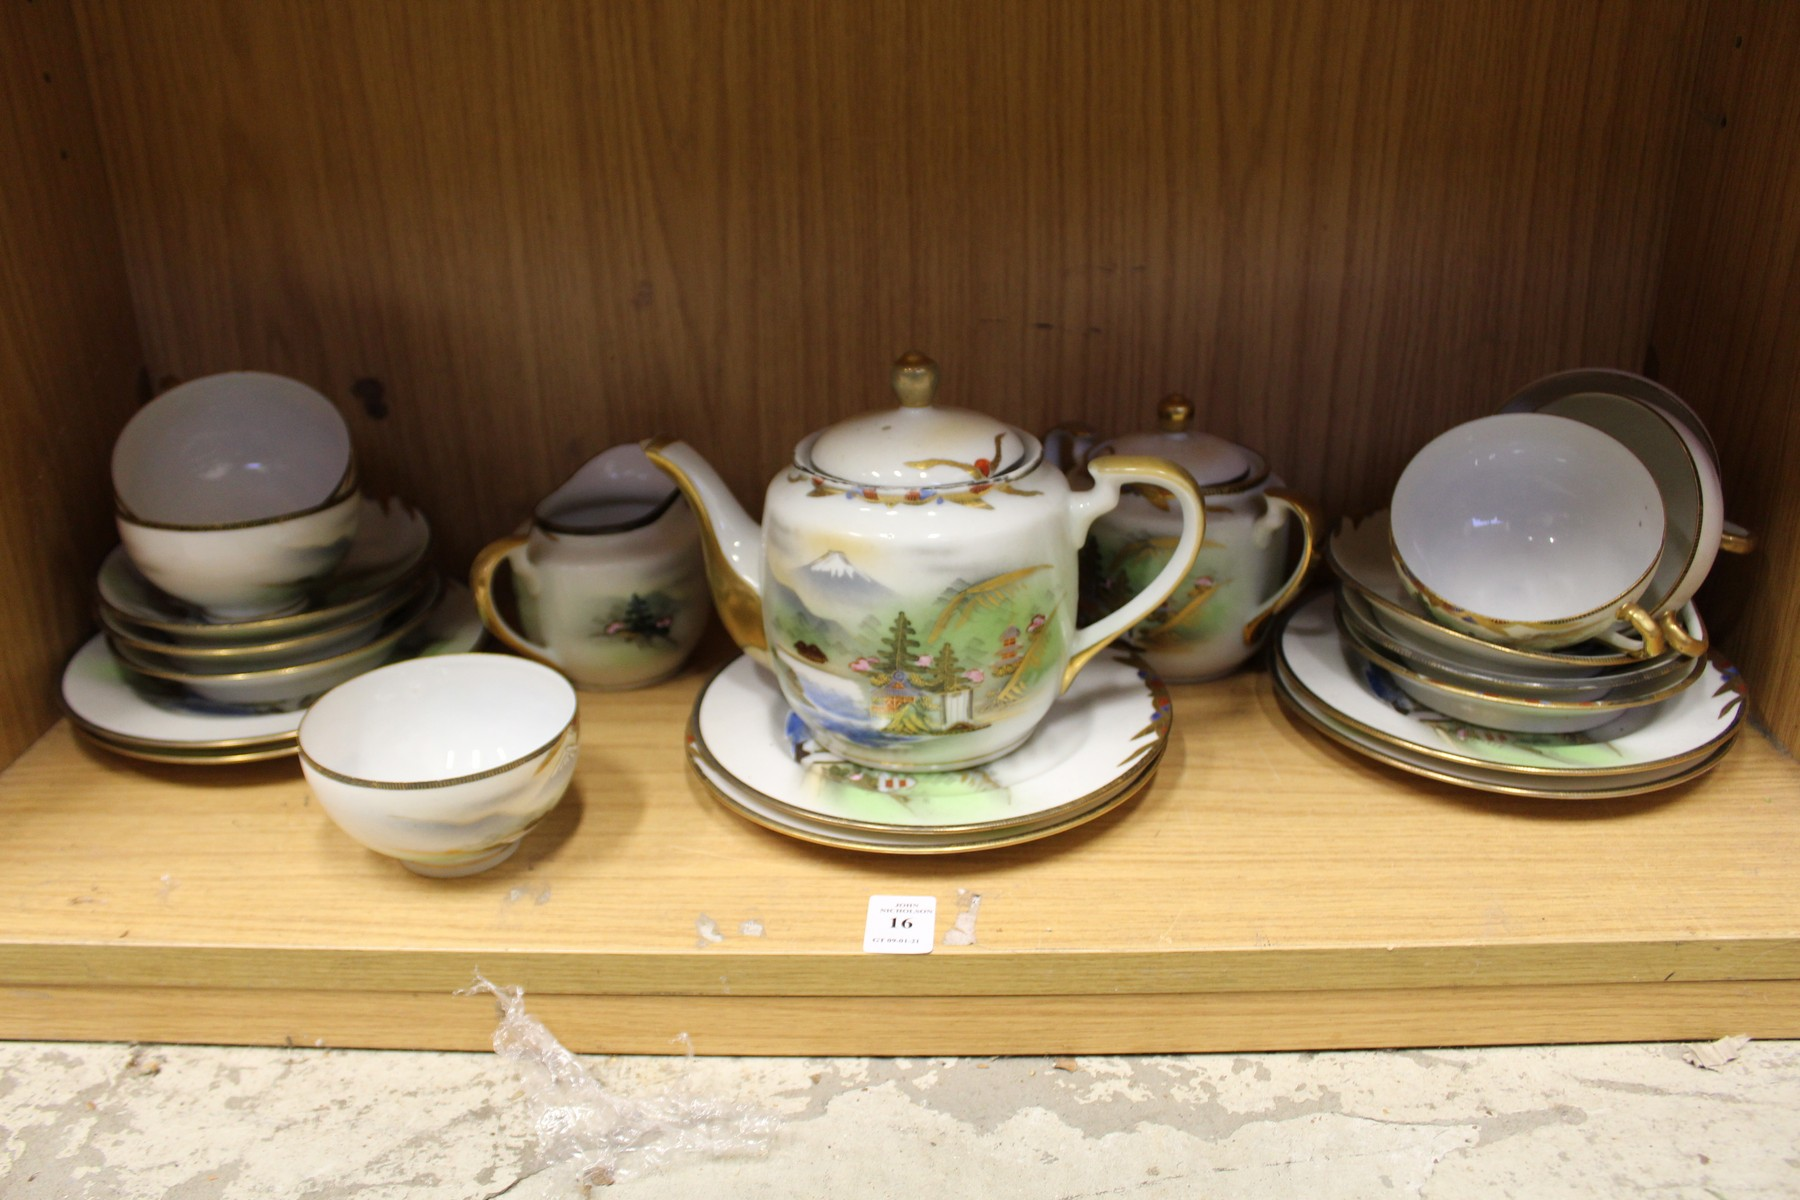 A Japanese egg shell tea service.